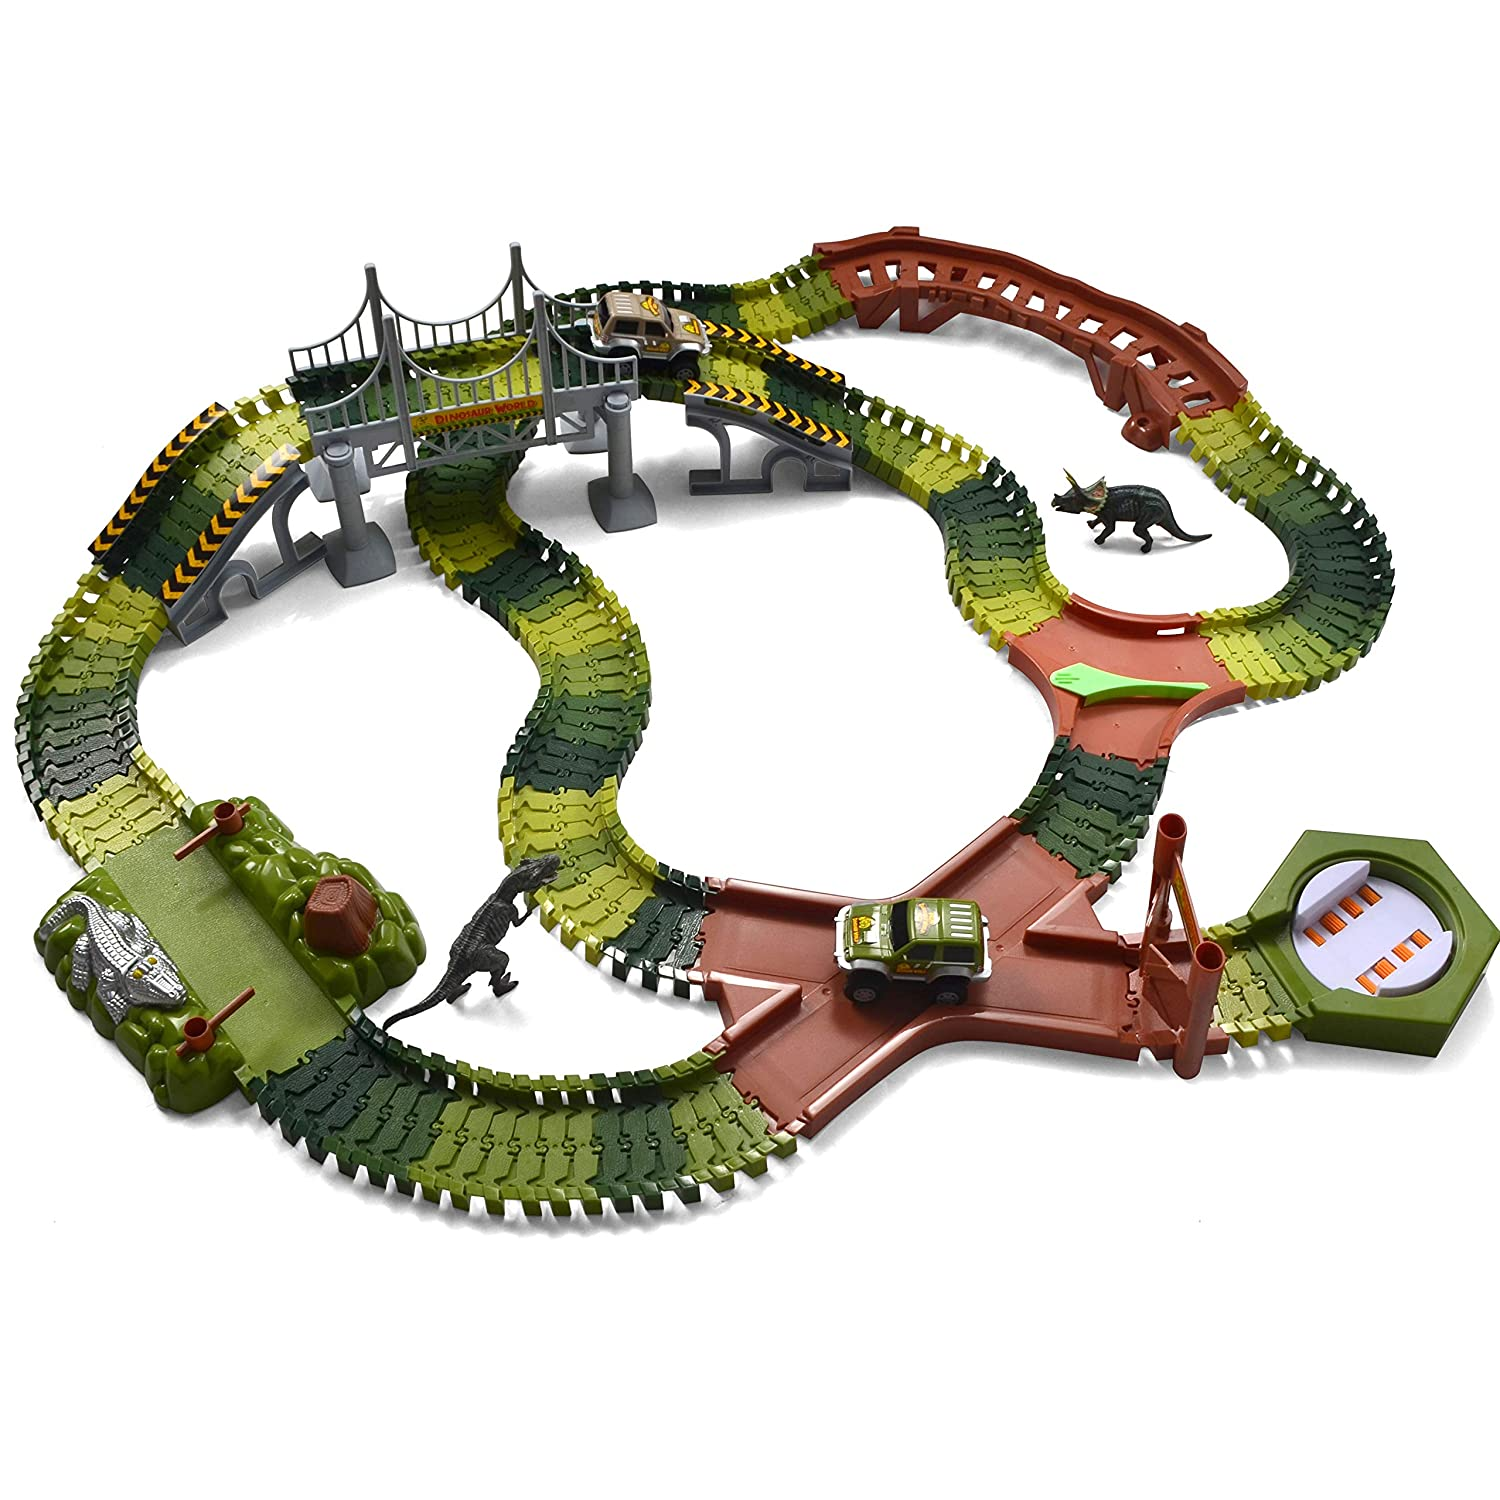 JOYIN Dinosaur World Race Tracks Flexible Train Track Race Car Vehicle Playset with 2 Battery Powered Race Cars 2 Dinosaur Actions Figures and 192 Piece Tracks 205 Piece in Total